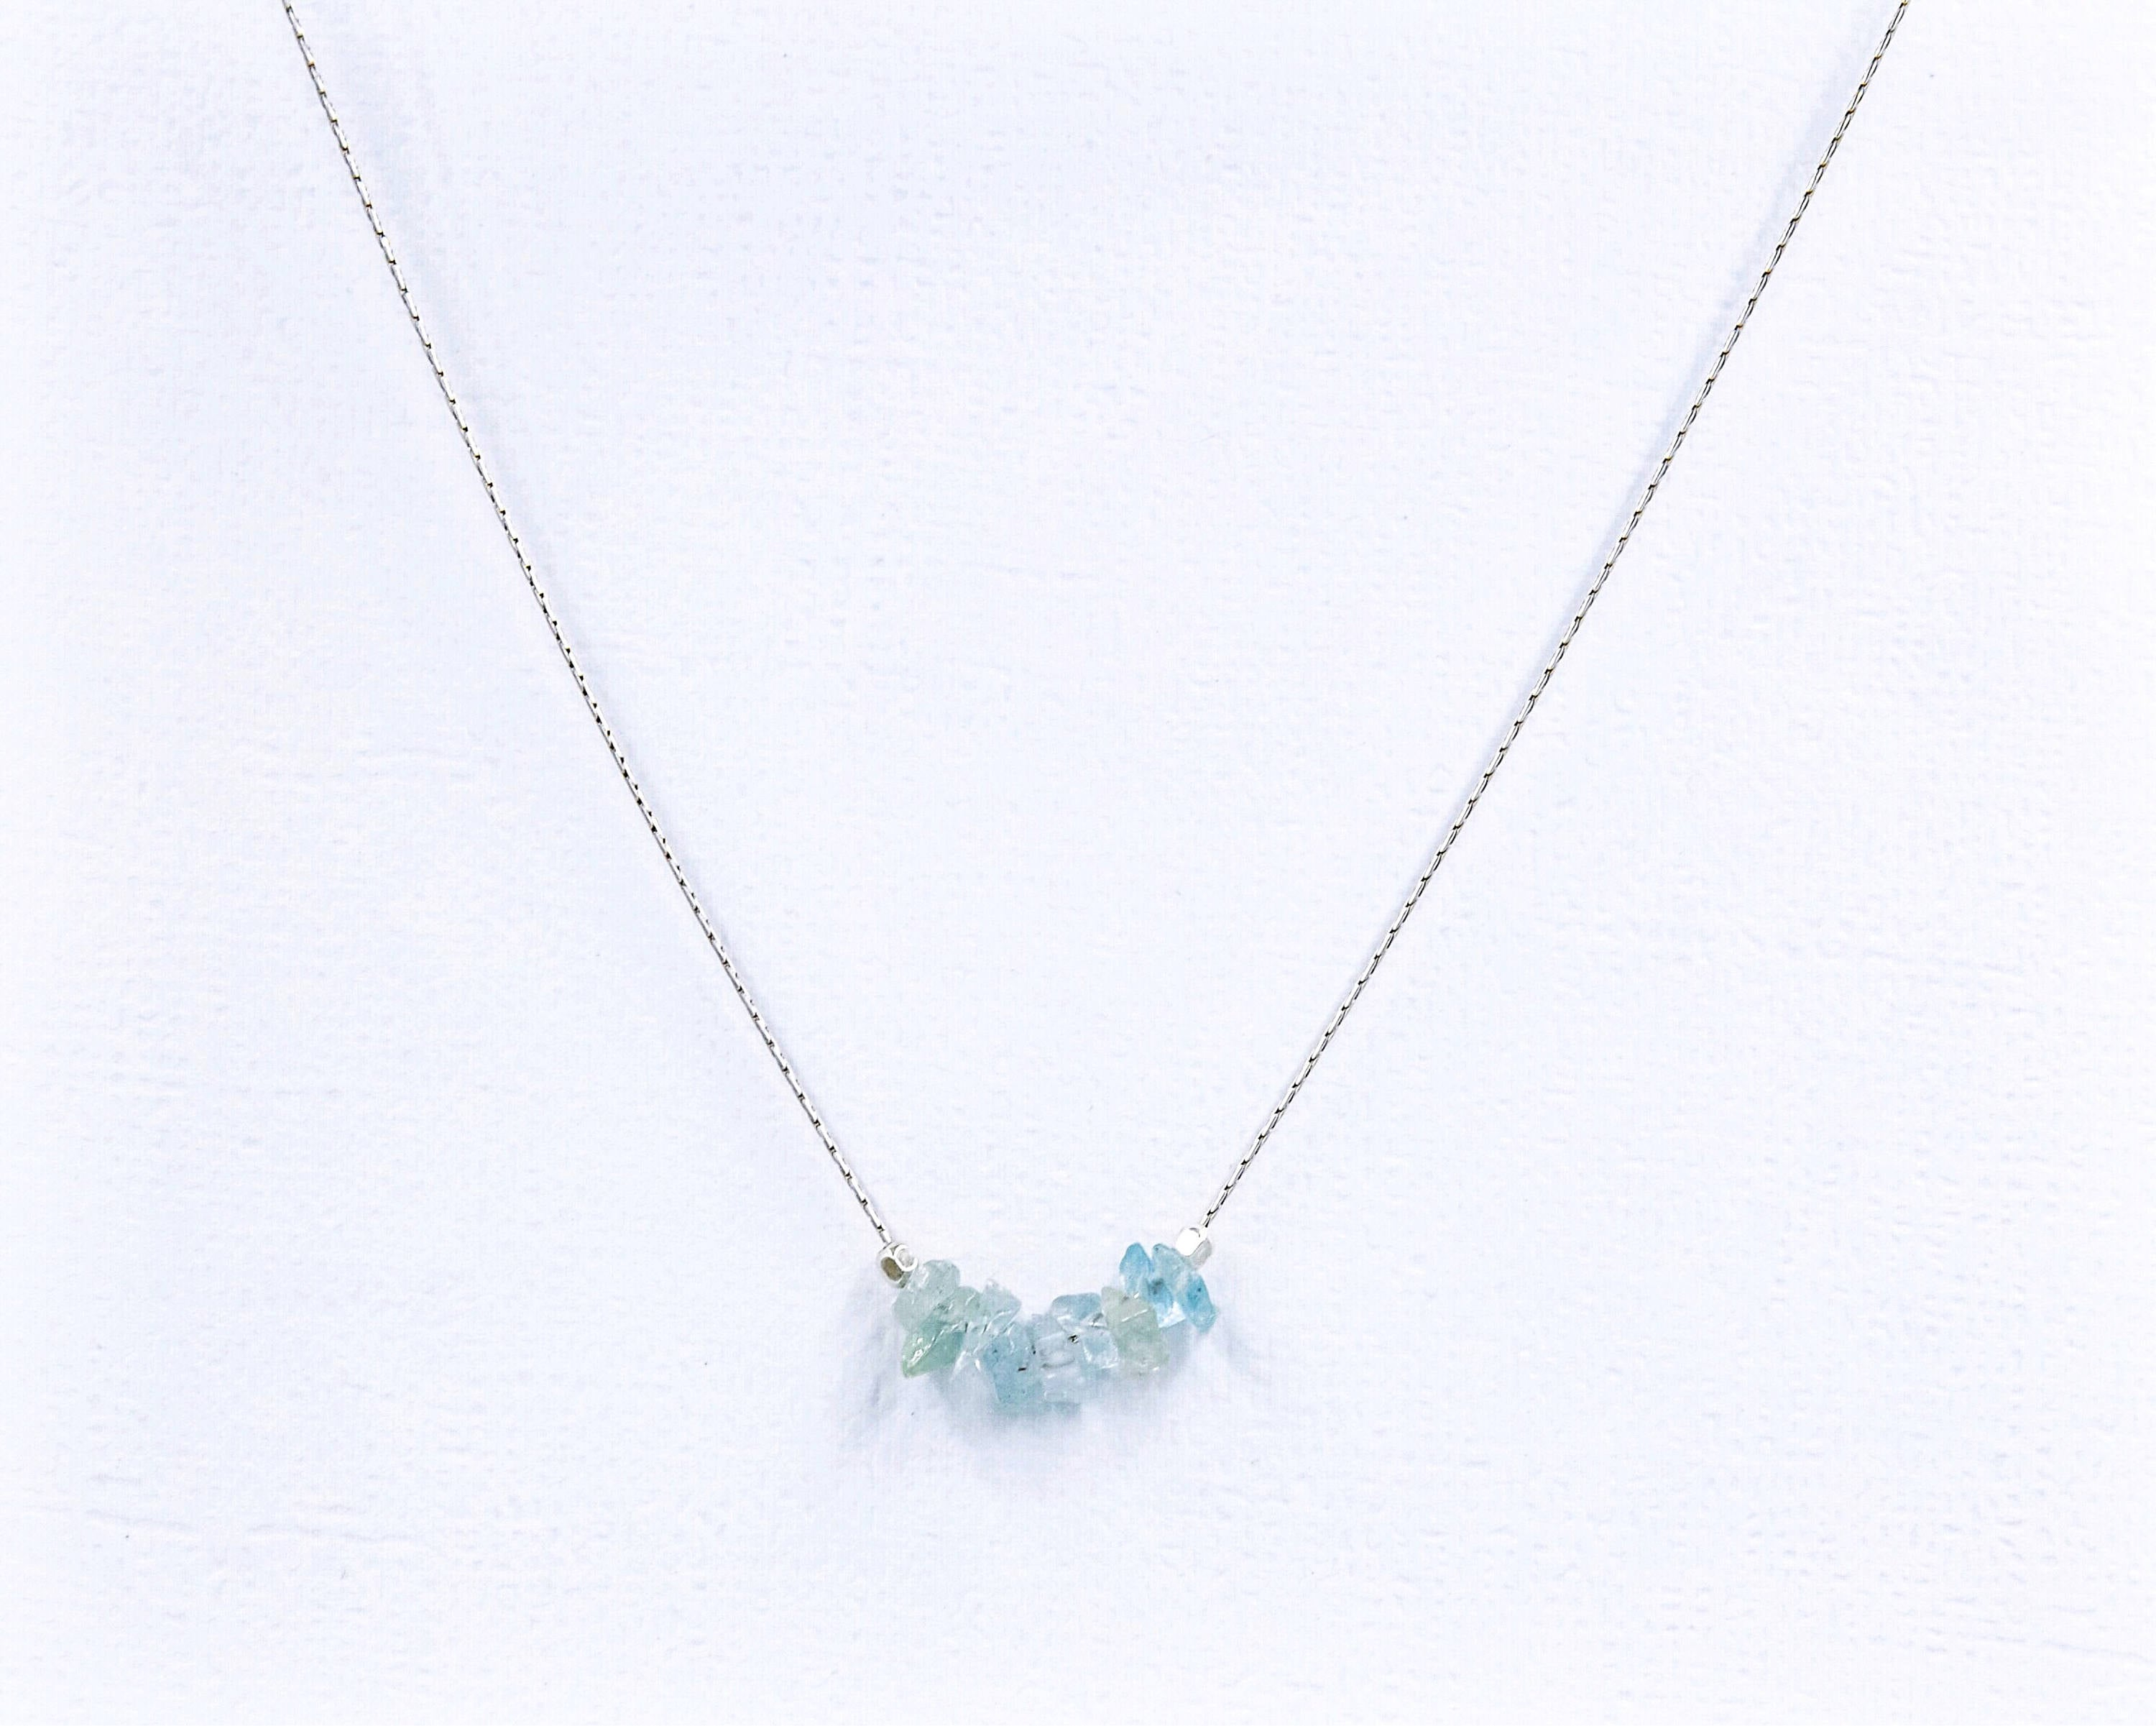 pendant shaped necklace index march birthstone beautiful heart aquamarine